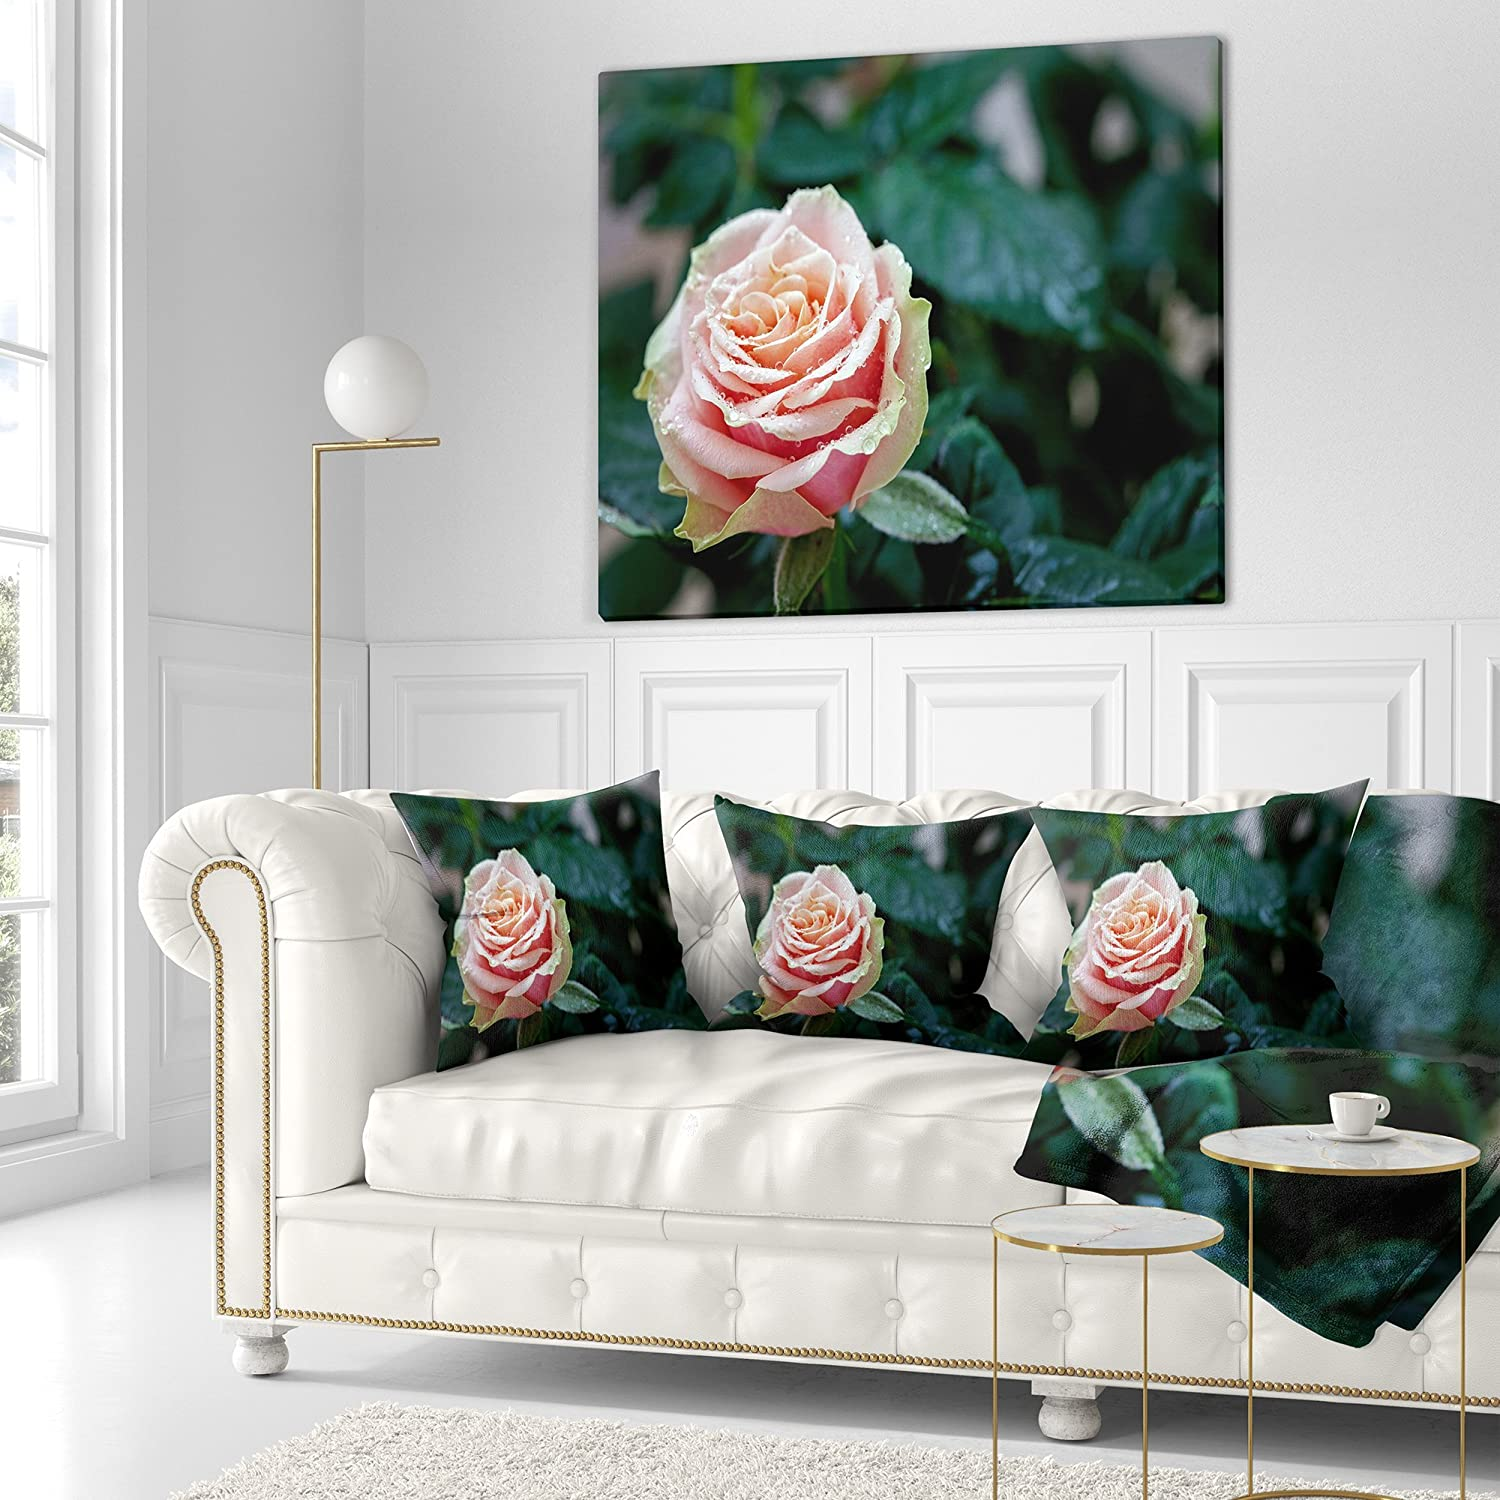 Sofa Throw Pillow 26 In Designart Cu12666 26 26 Red And Orange Rose Flower Close Up Floral Cushion Cover For Living Room X 26 In In Insert Printed On Both Side Throw Pillow Covers